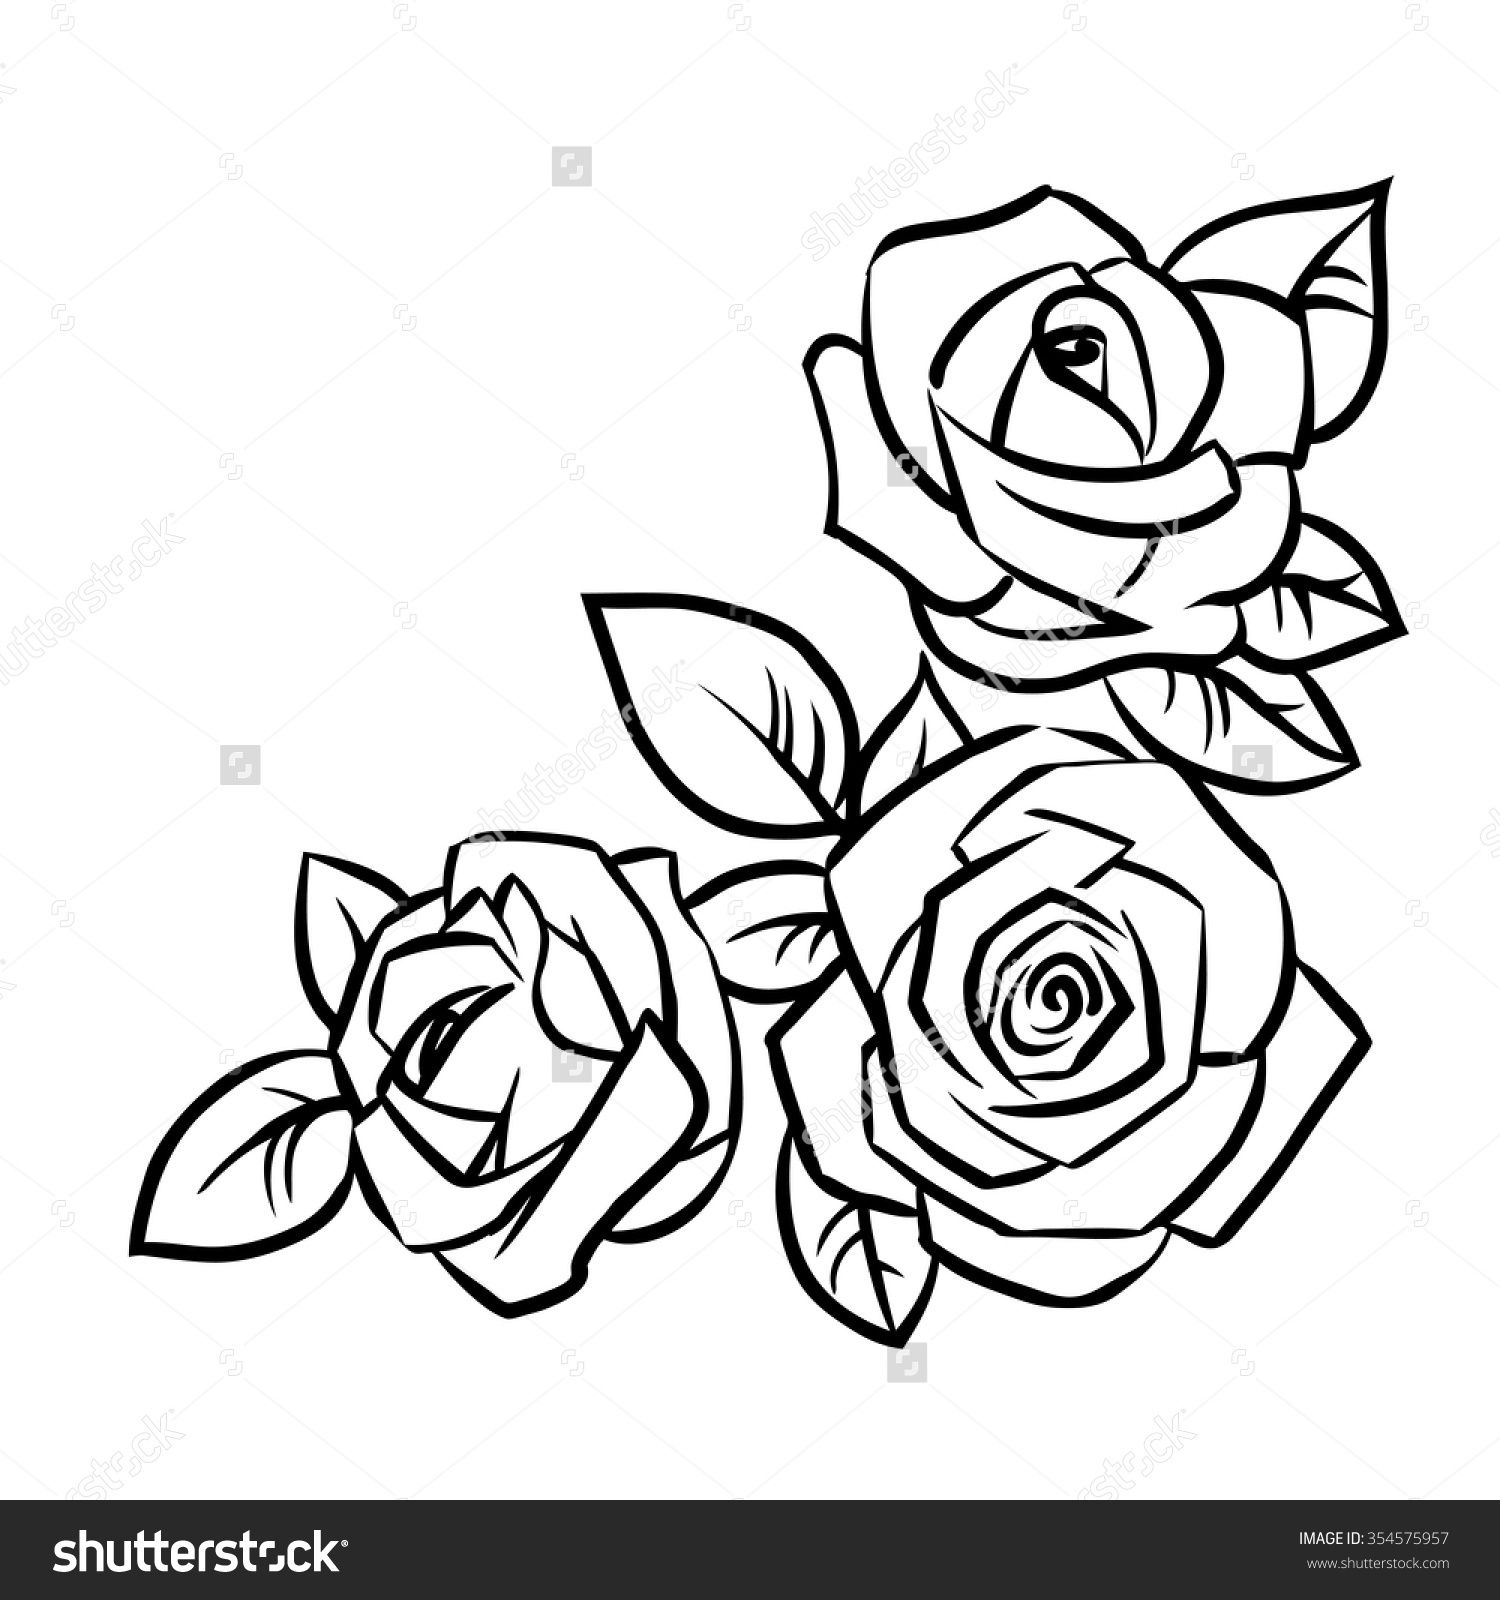 Drawing Lines With Svg : Simple rose outline drawing google search tattoos